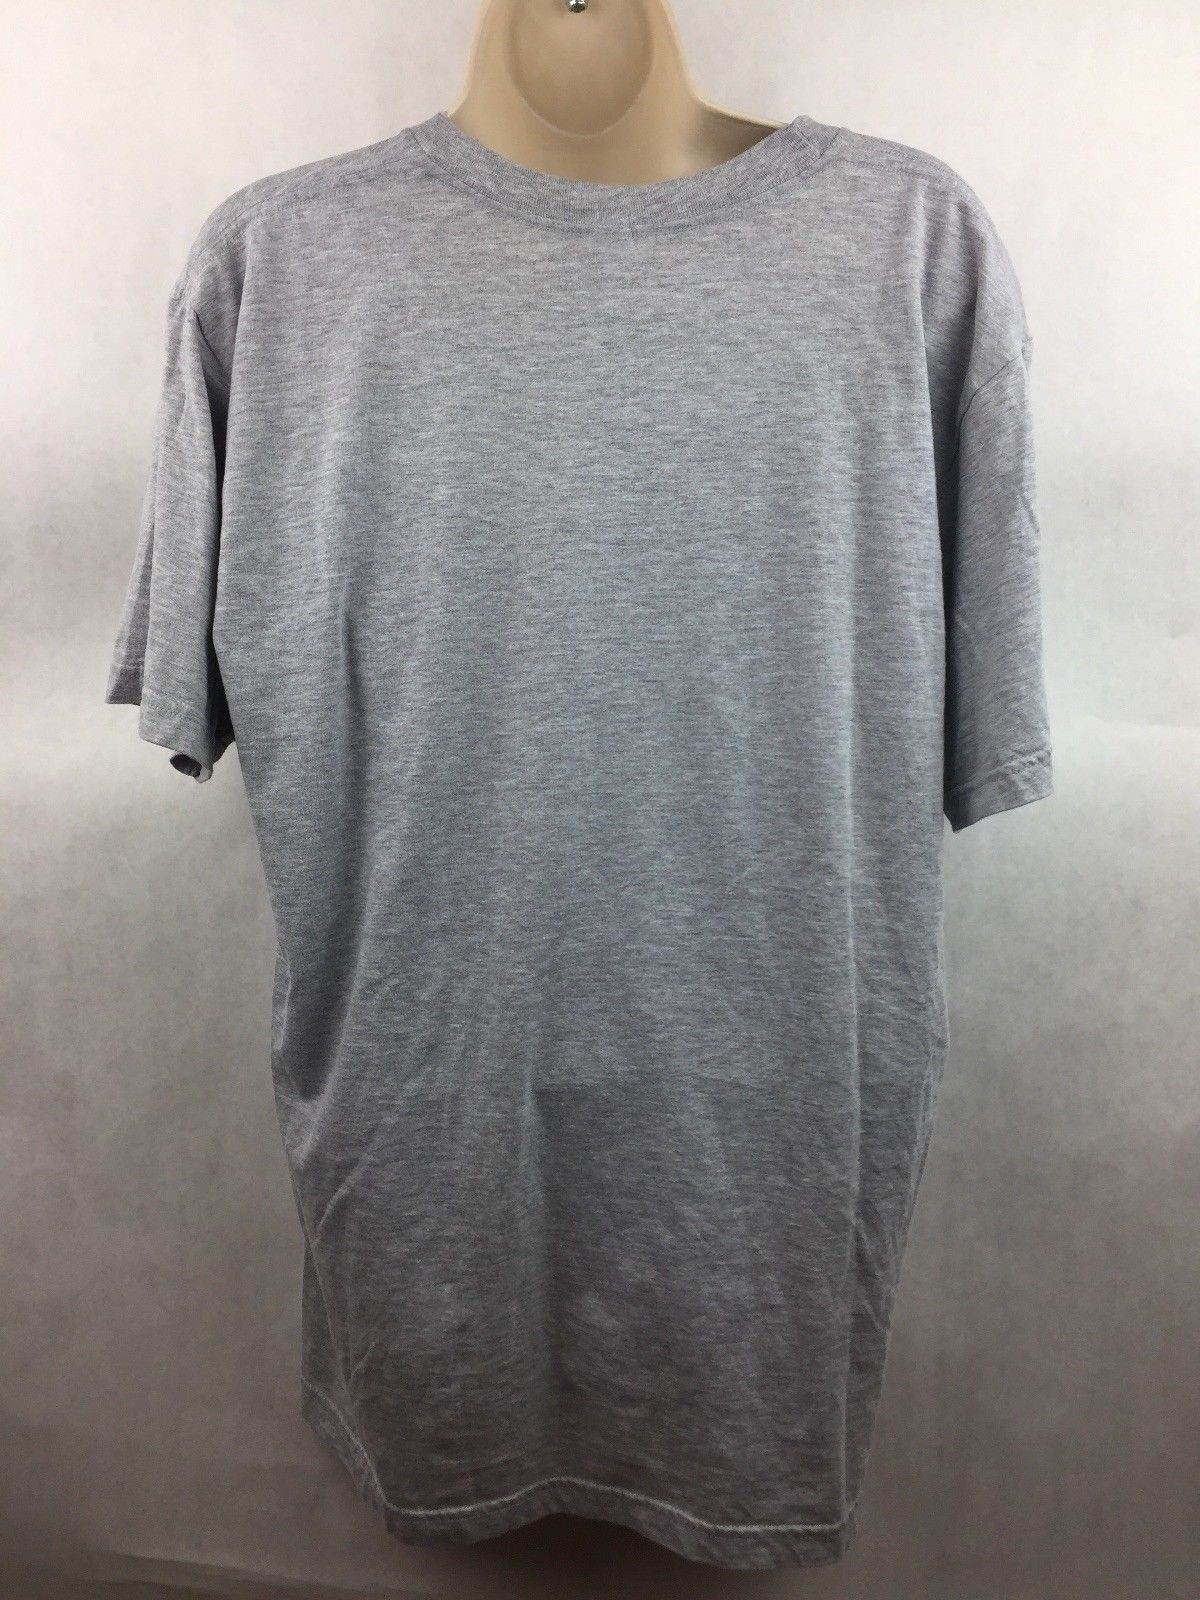 American Apparel Custom Ink Gray 5k Finisher And Similar Items